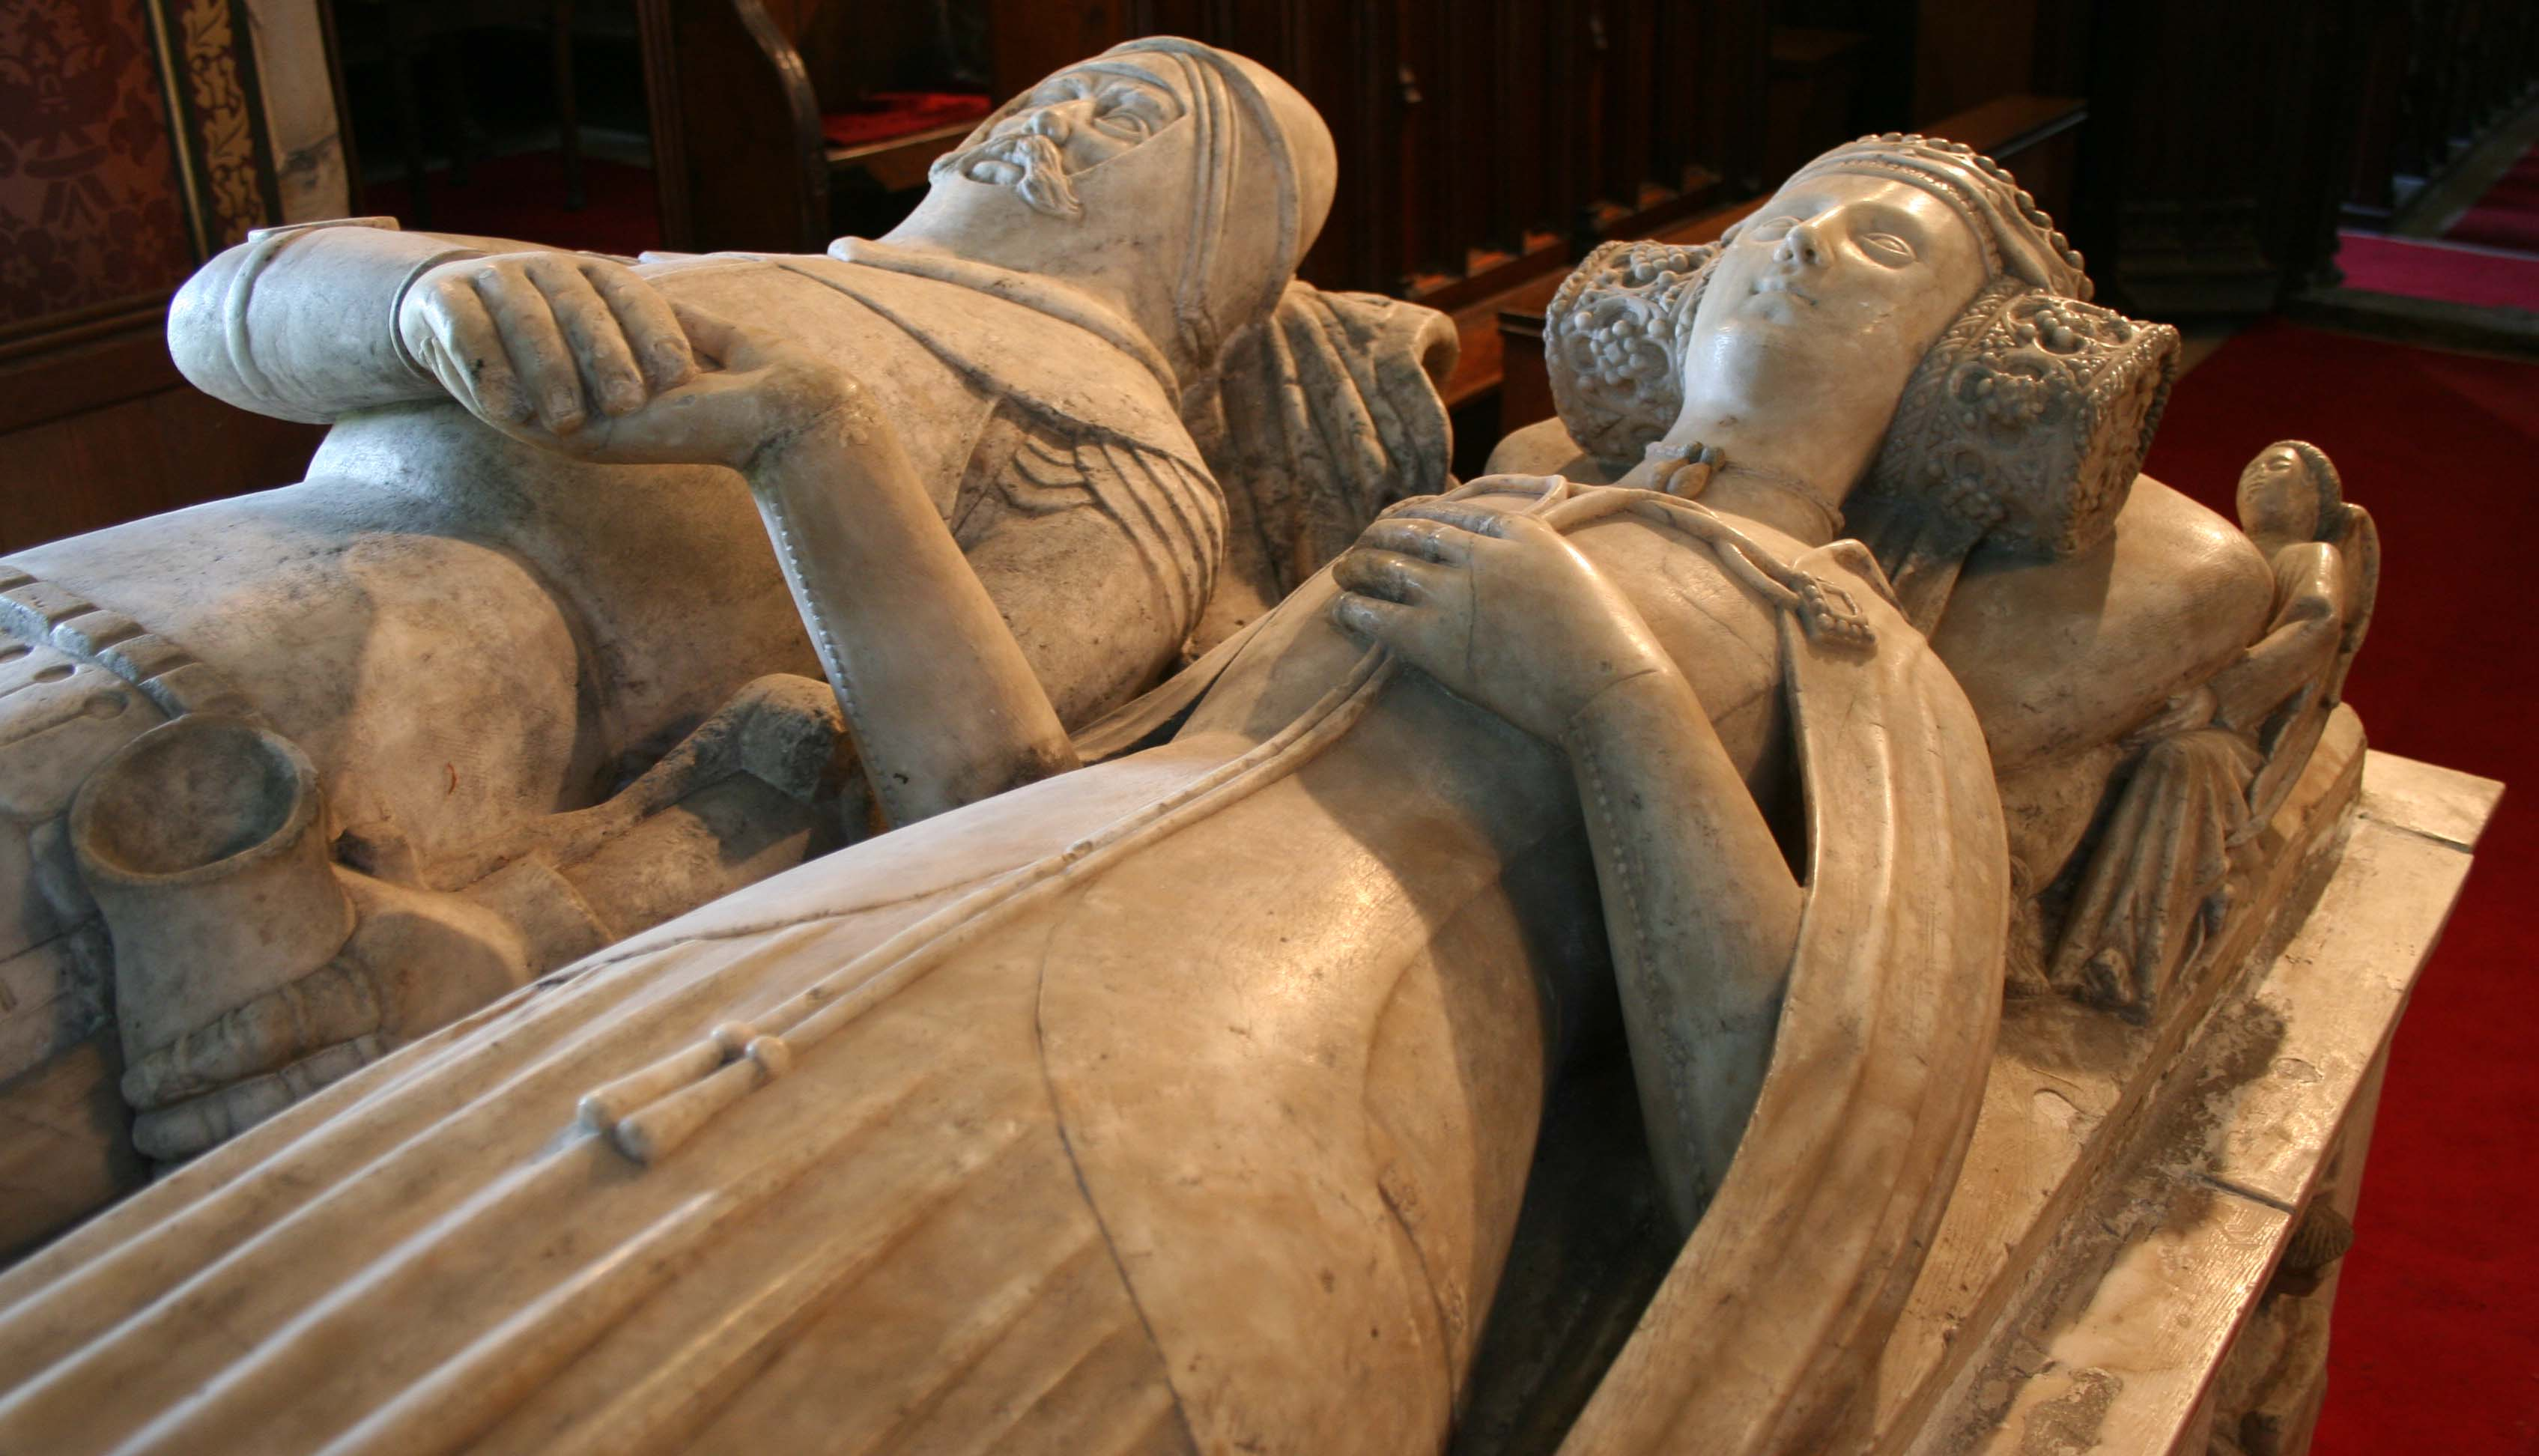 A photo of two a man and a woman carved out of stone. The man is wearing armour and the woman is wearing a dress and cloak. The figures are lying on their backs, and are holding hands.